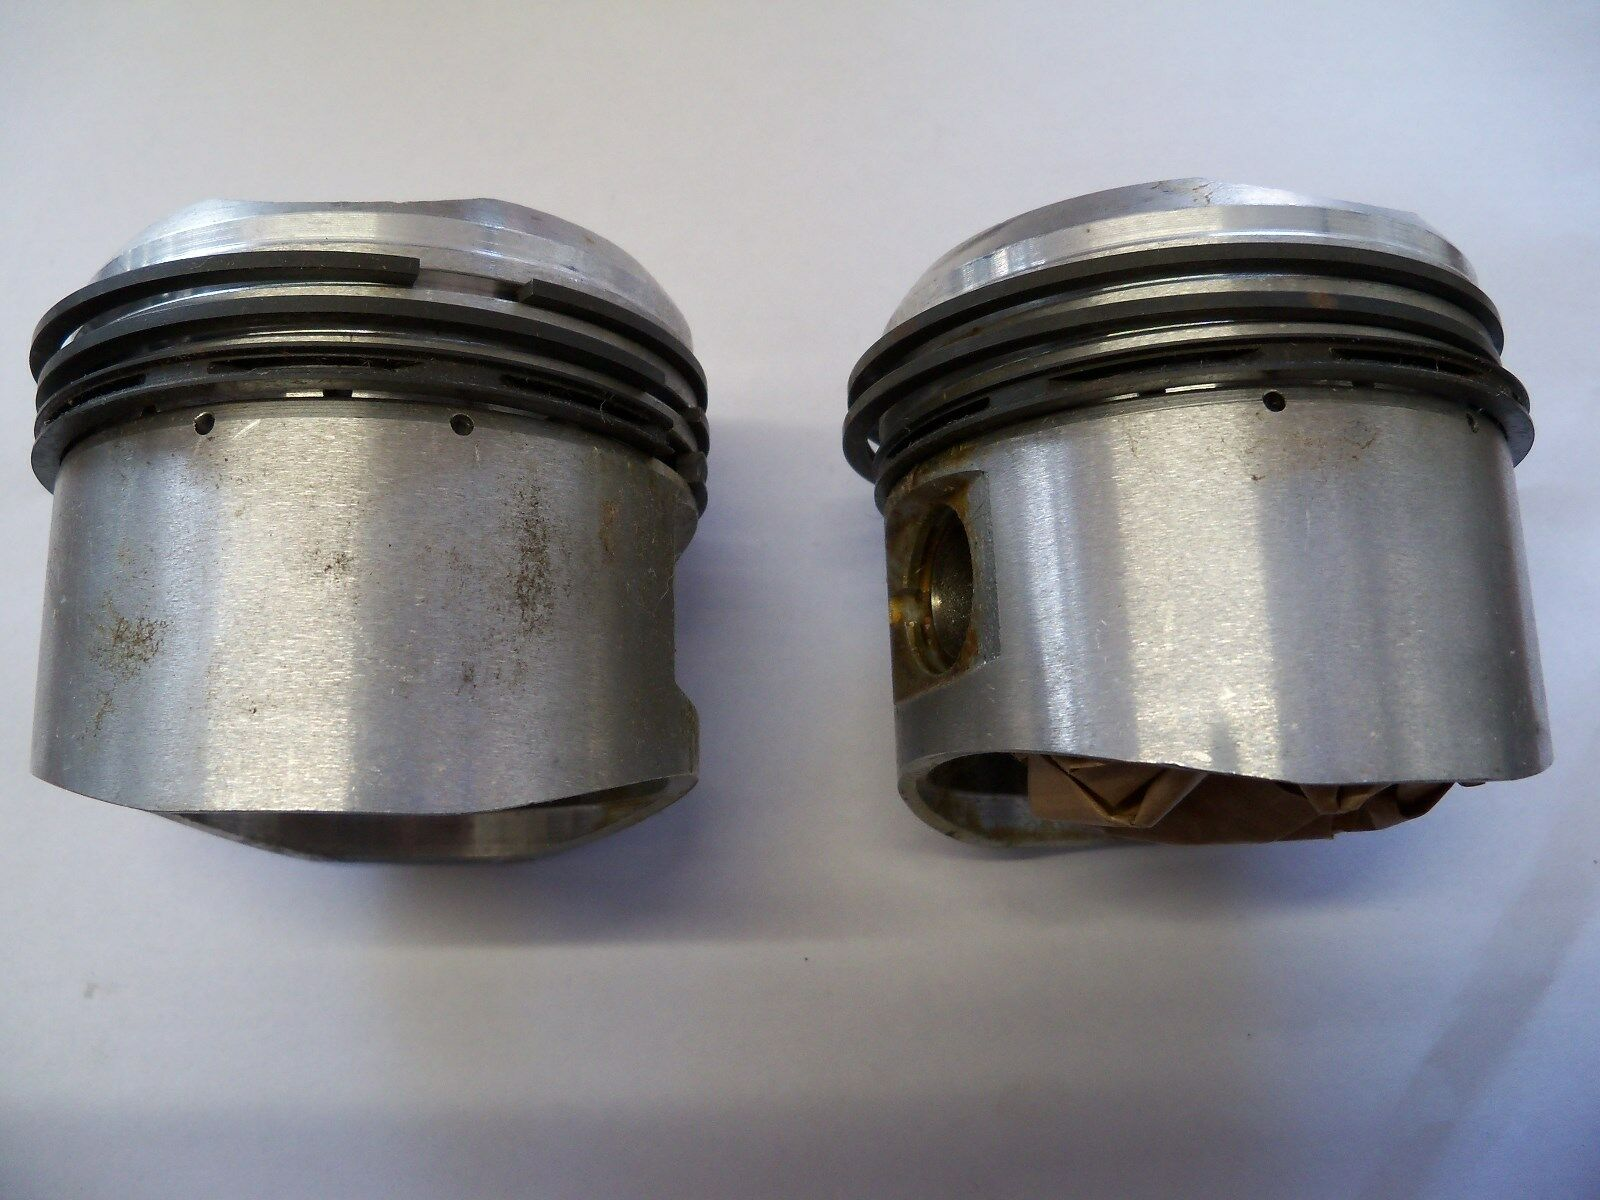 20 oversize HEPOLITE PISTONS gudgeon pins circlips rings NEW! 2 BSA A10 1950-62